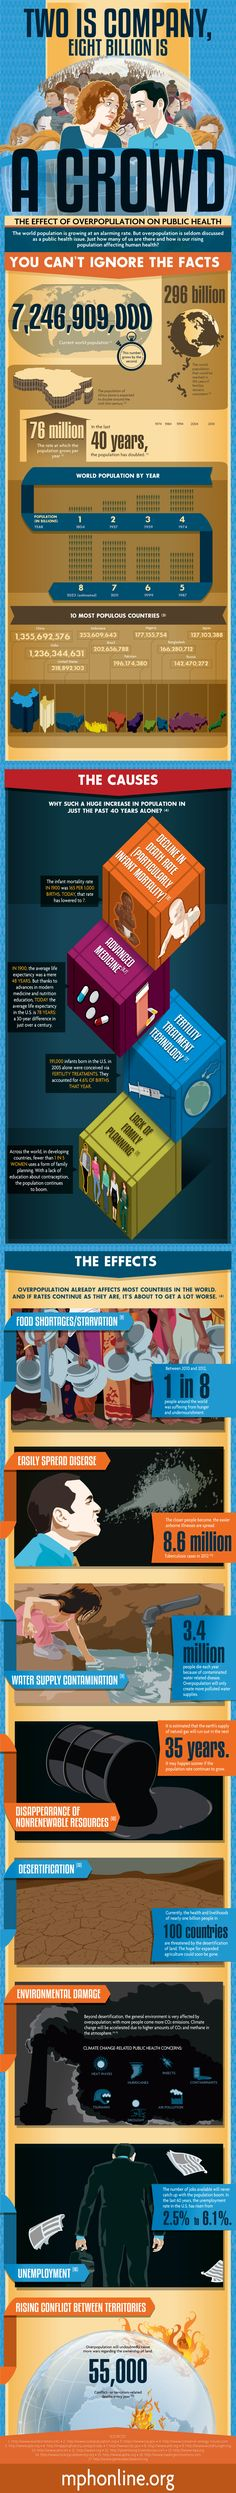 The Effect of Overpopulation on Public Health #infographic #Population #Health